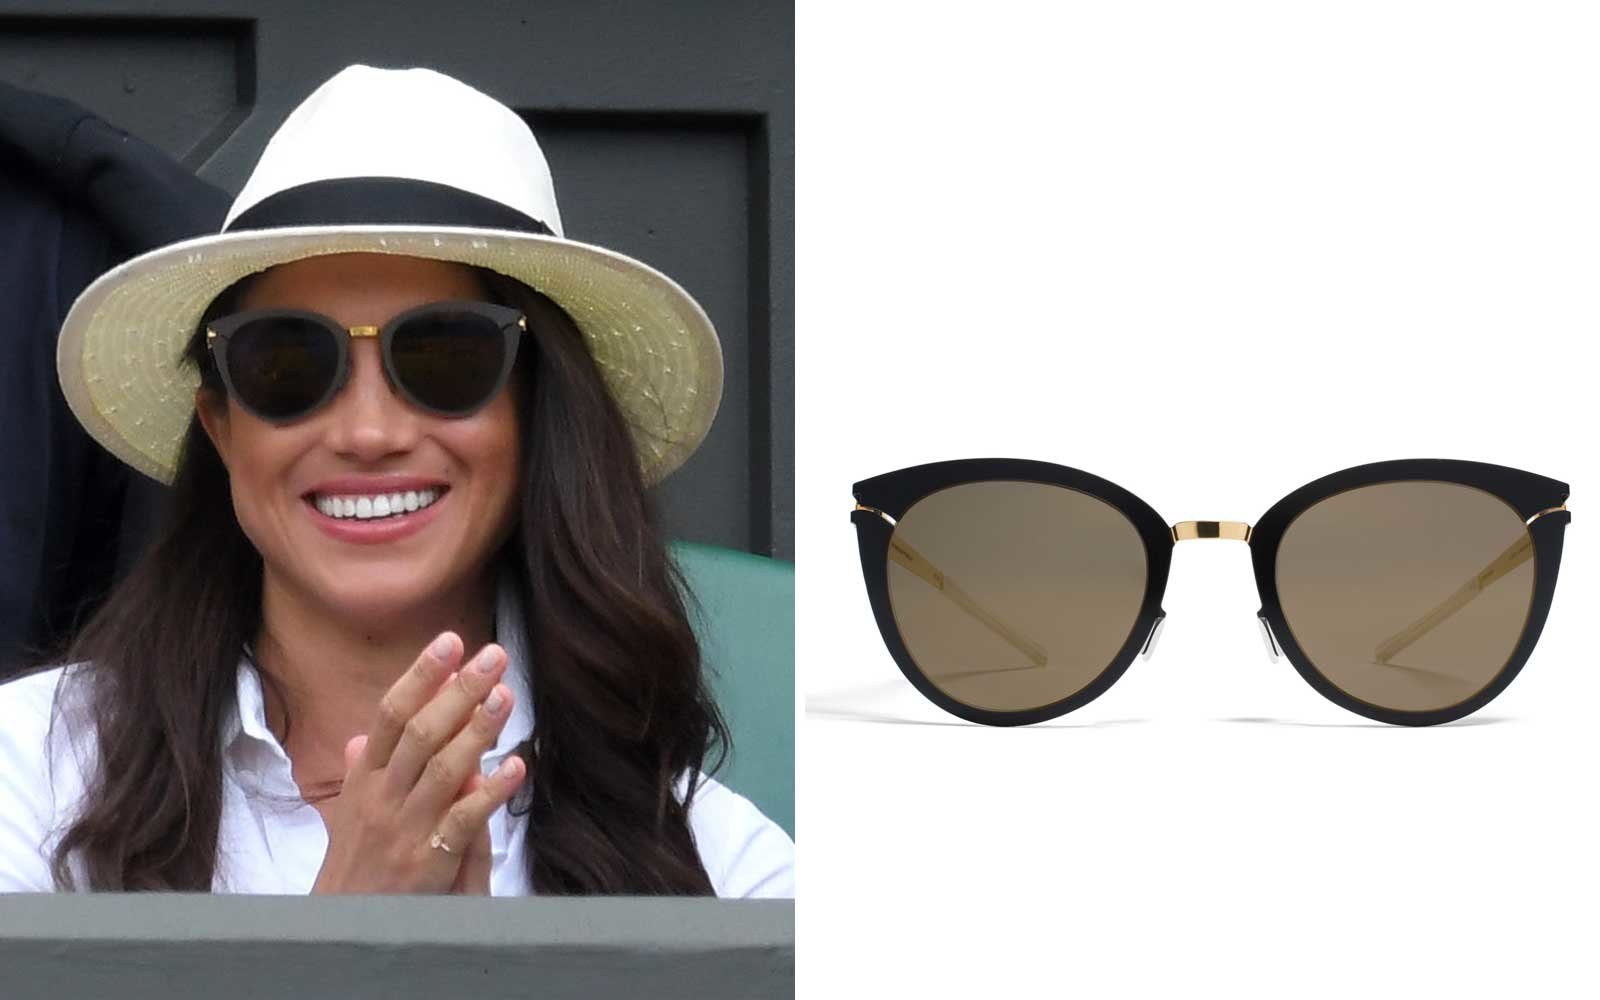 da029eadf67 The Best Sunglasses According to Celebrities